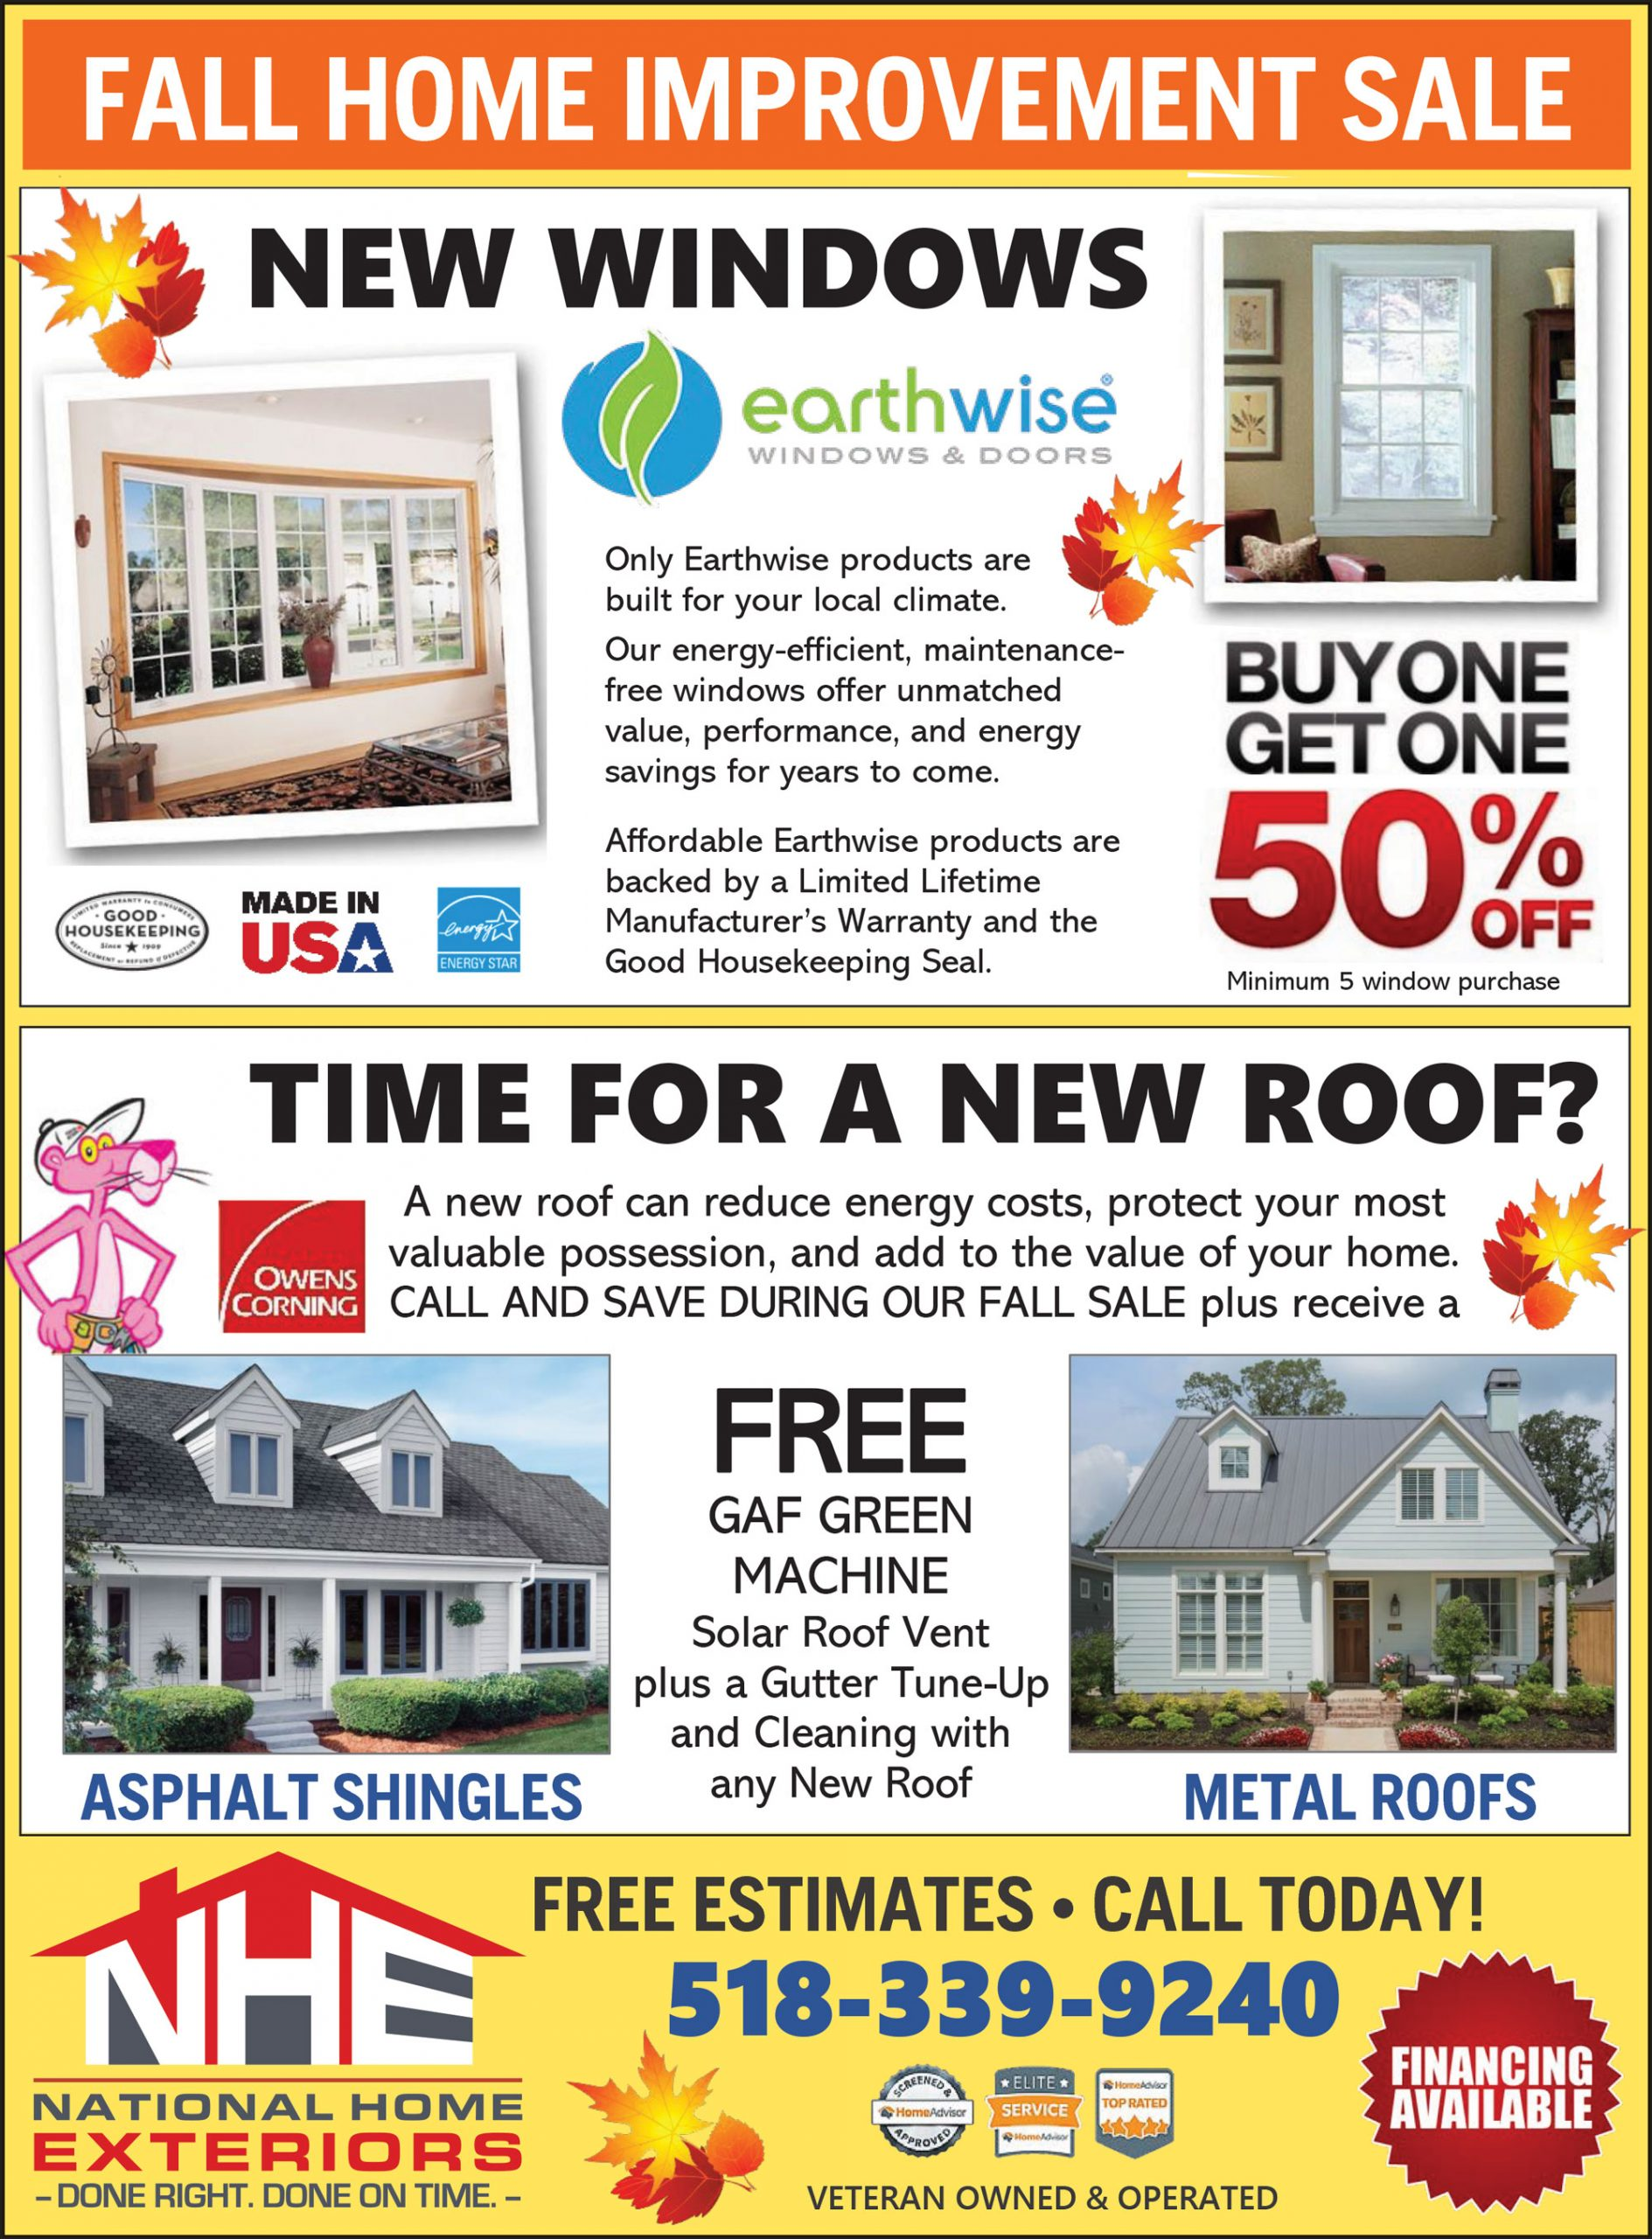 National Home Exteriors